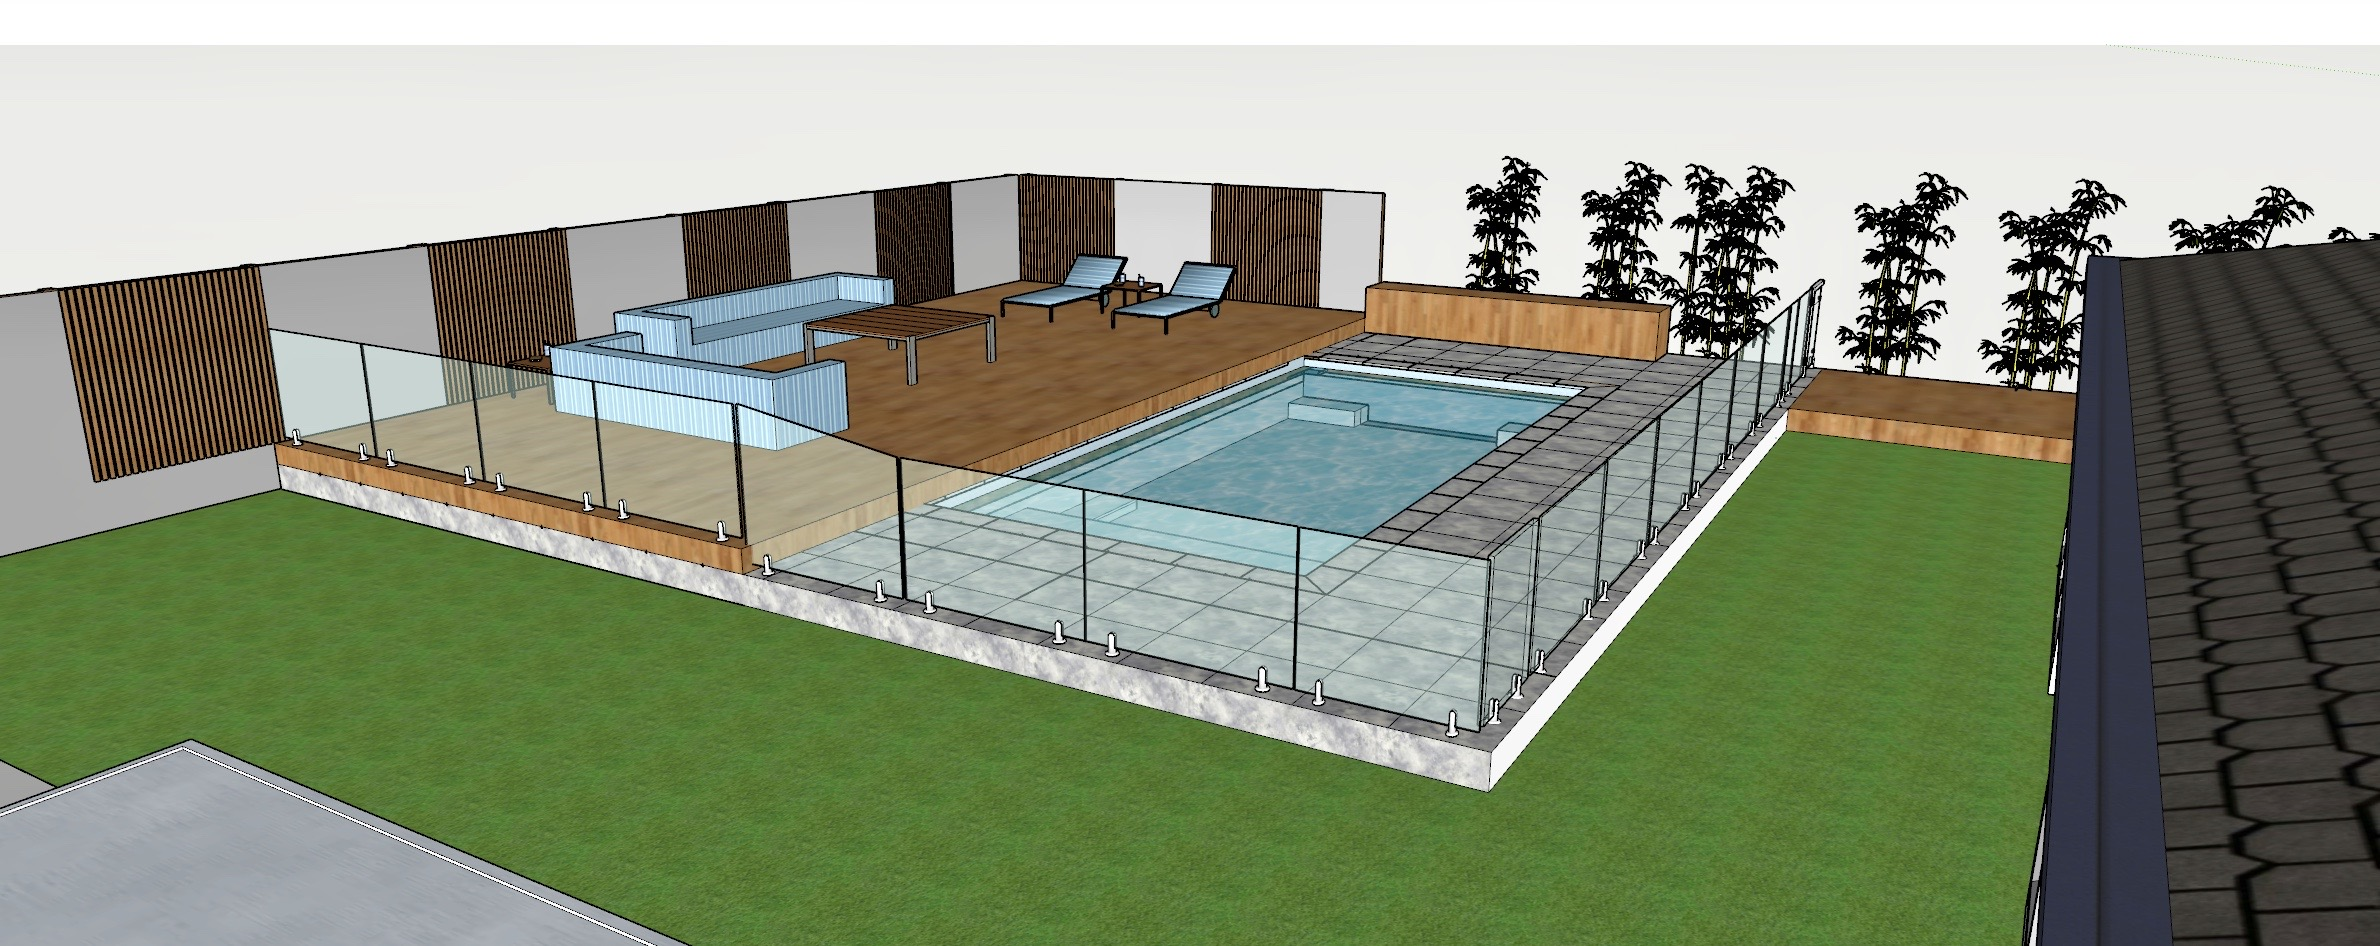 Sketchup 3D design of a swimming pool